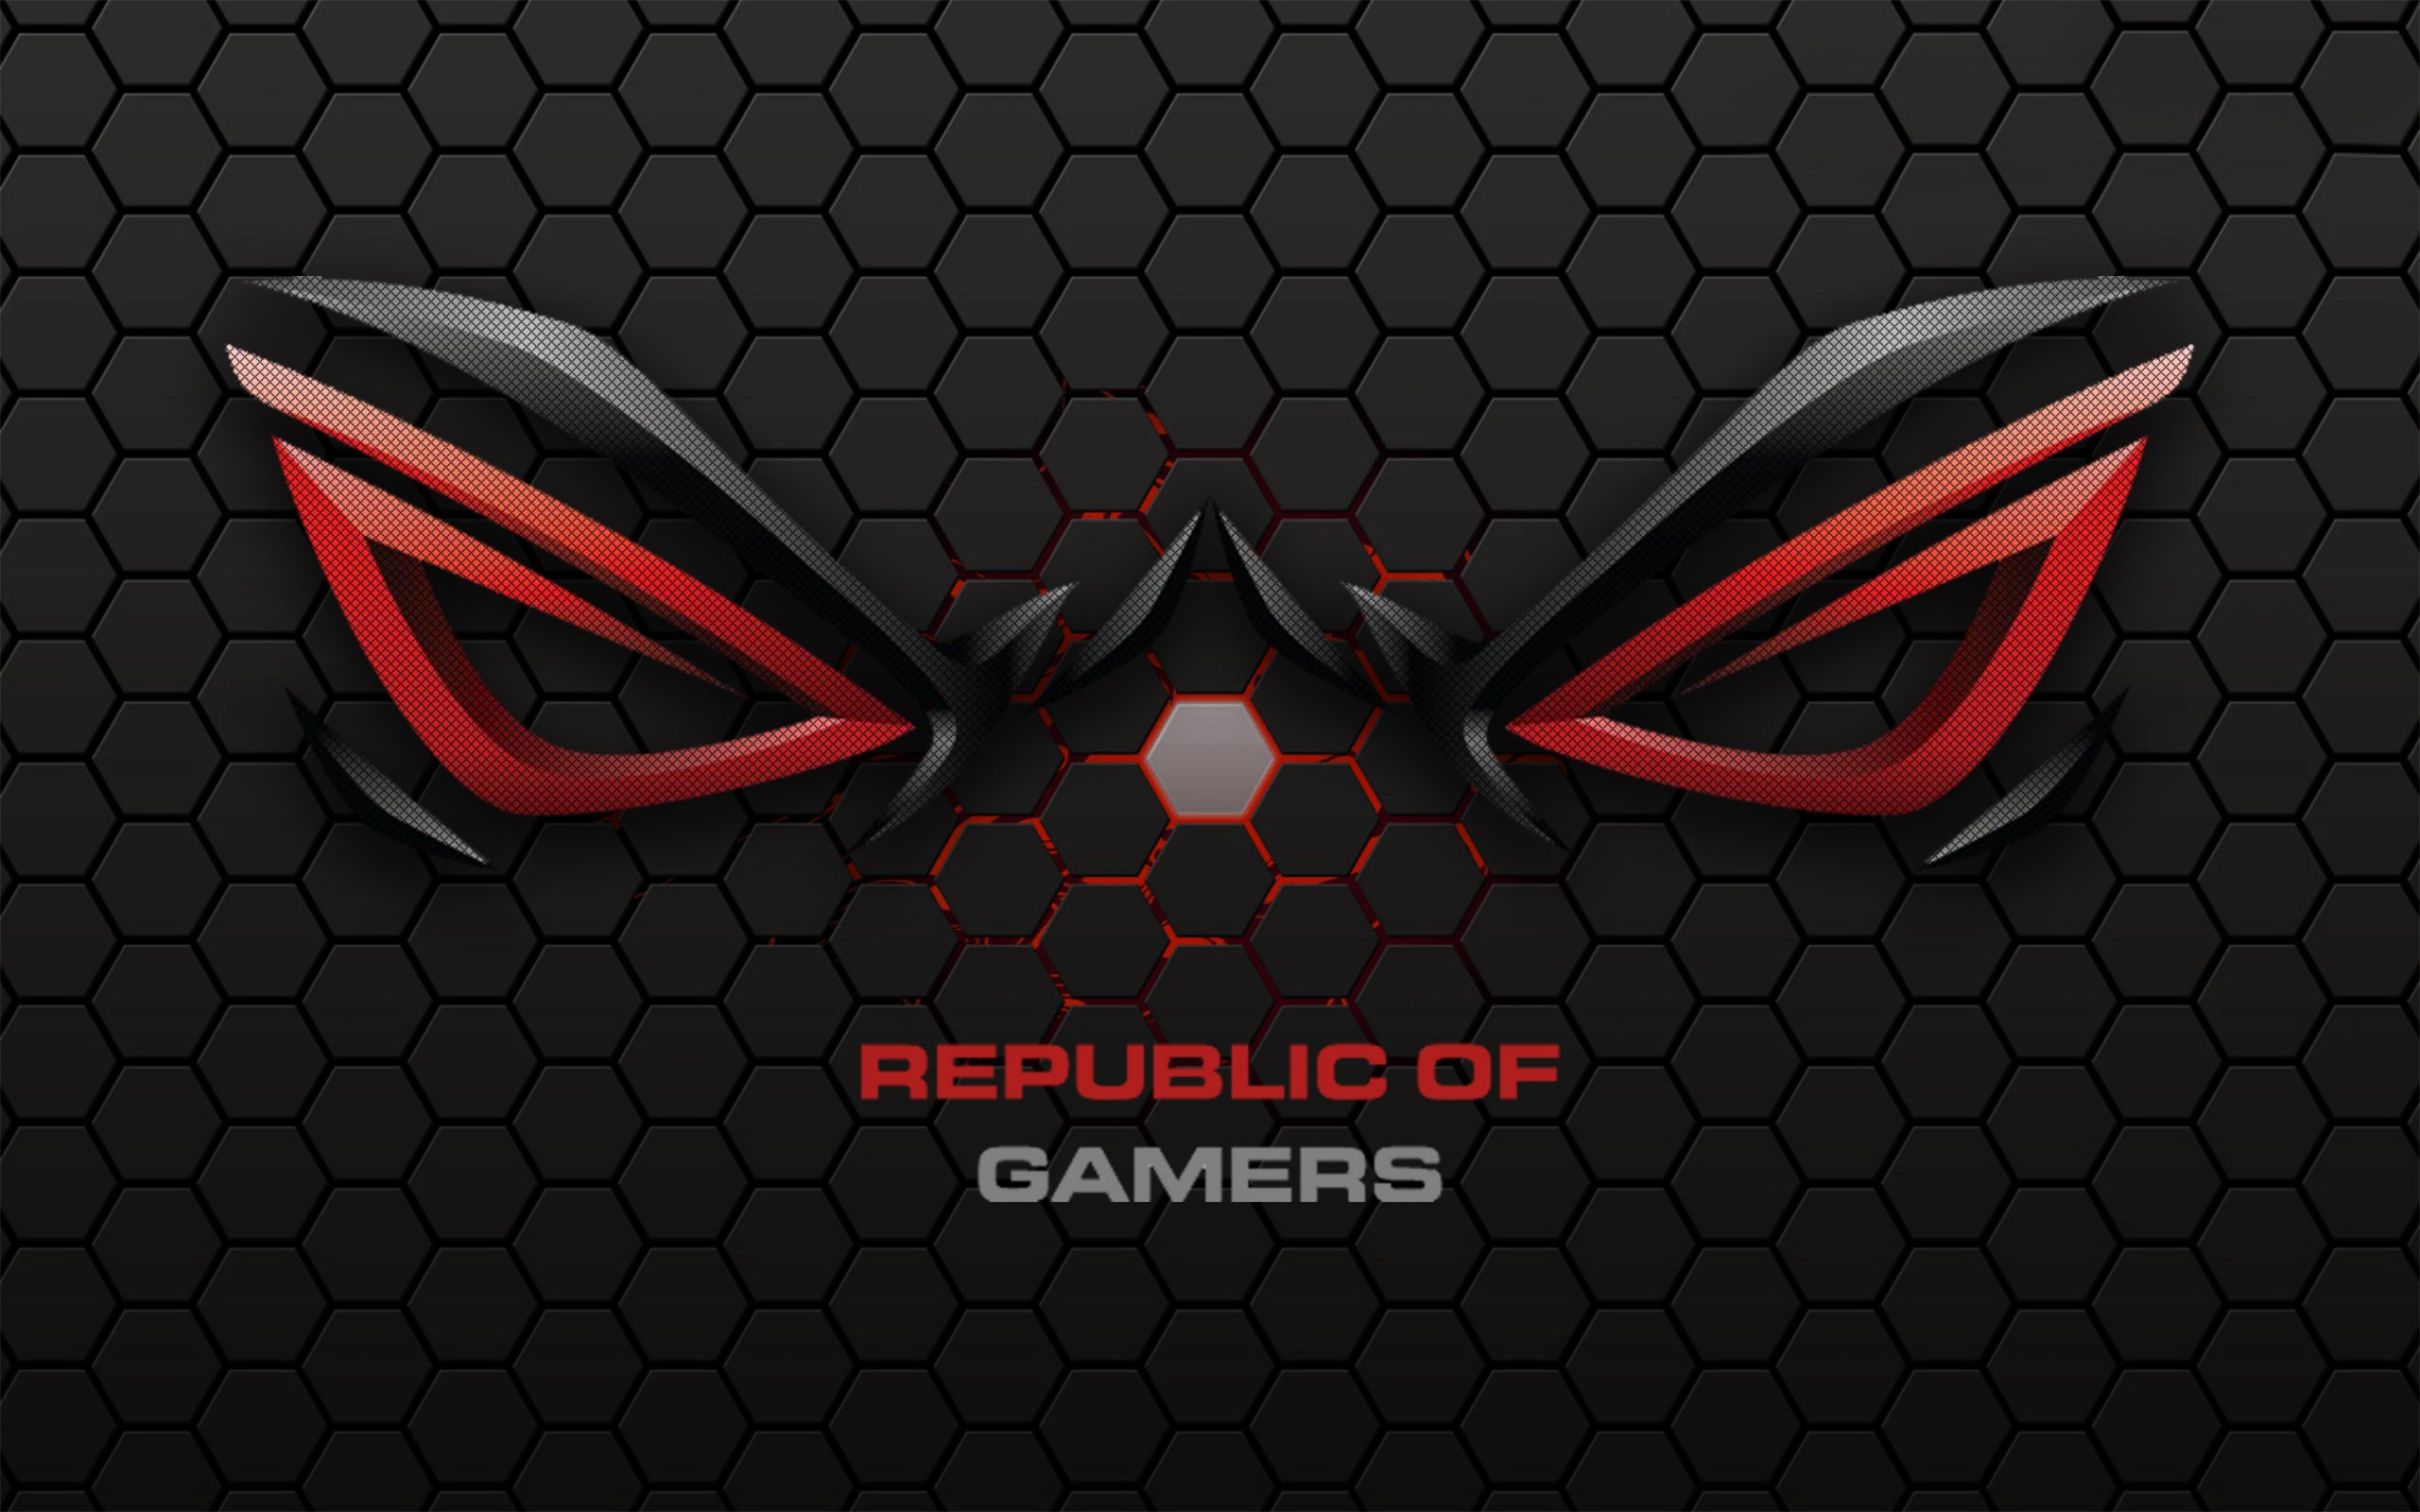 Red Asus Wallpaper: RoG Wallpaper ·① Download Free Stunning HD Backgrounds For